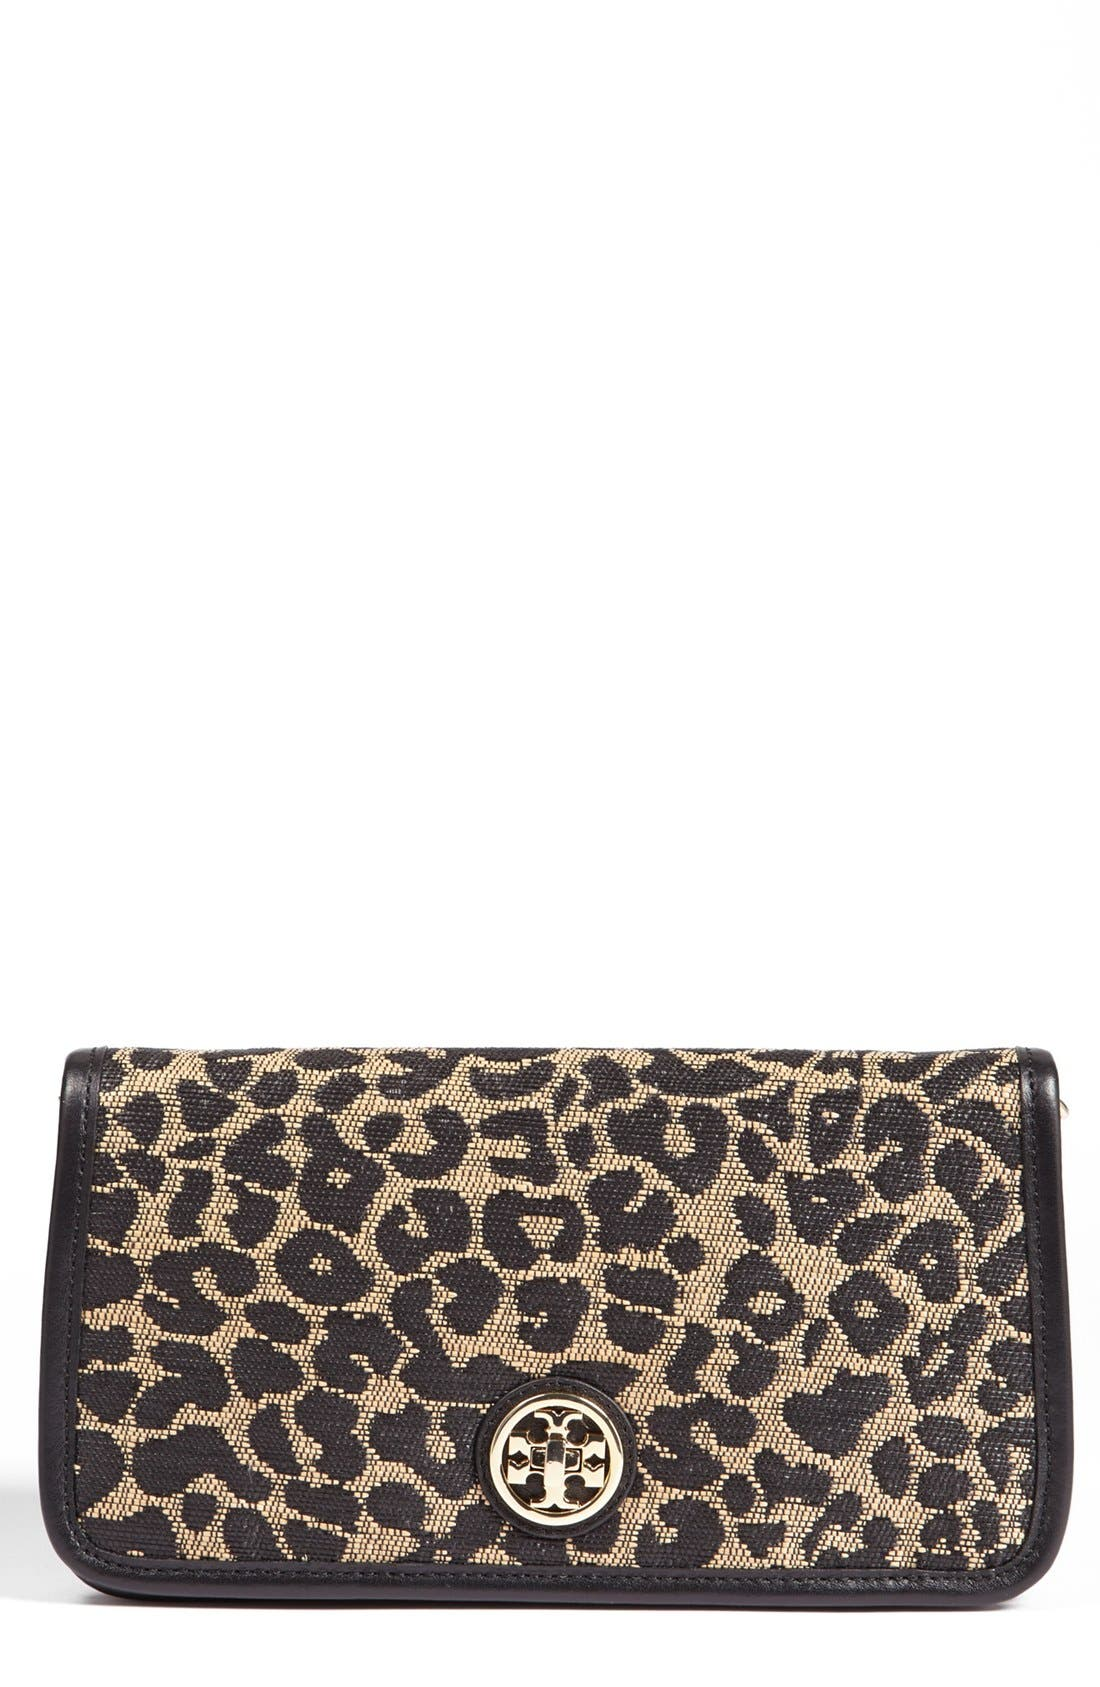 Main Image - Tory Burch 'Adalyn' Leopard Raffia Clutch